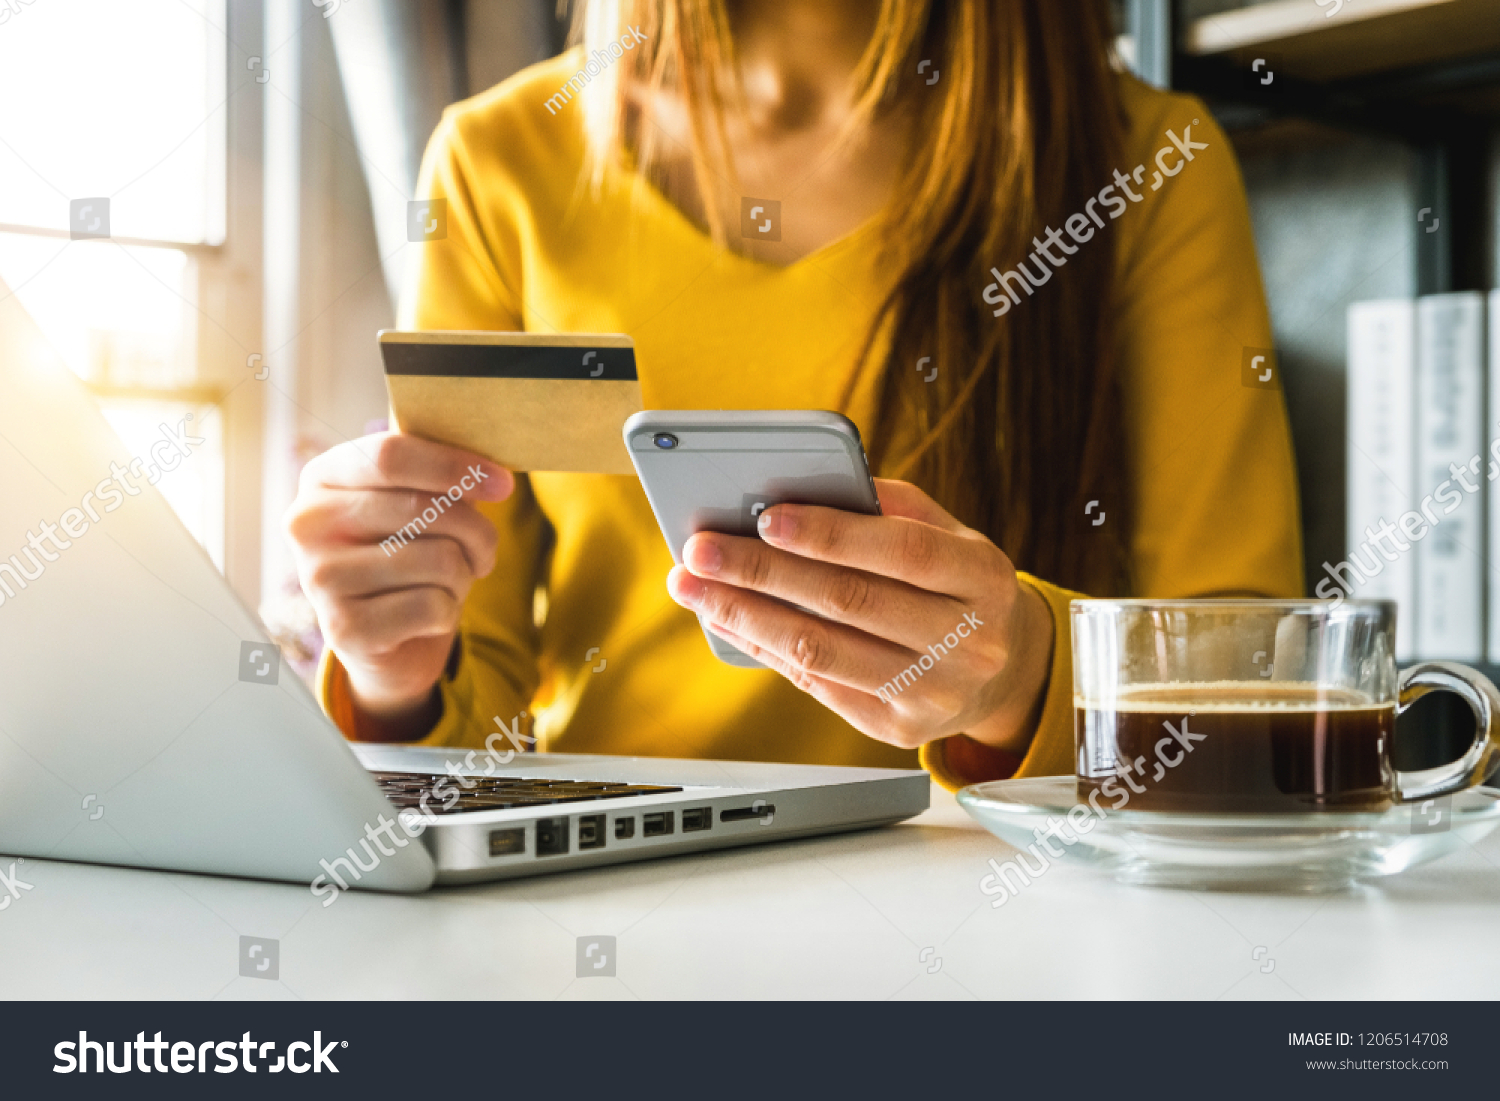 businesswoman hand using smart phone, tablet payments and holding credit card online shopping, omni channel, digital tablet docking keyboard computer at office in sun light  #1206514708